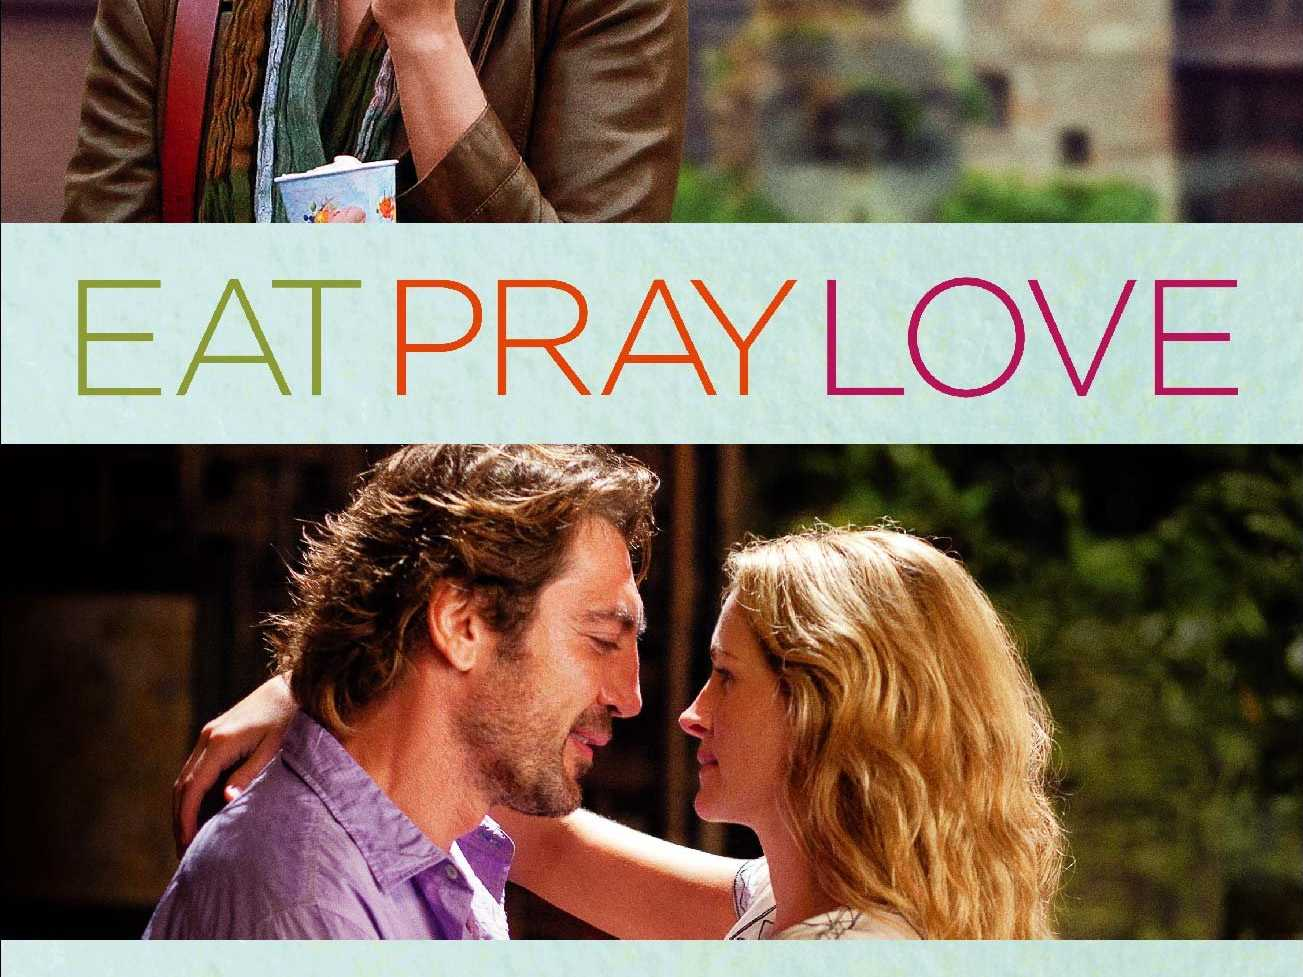 eat pray love showed julia roberts falling in love with javier bardem while traveling the. Black Bedroom Furniture Sets. Home Design Ideas